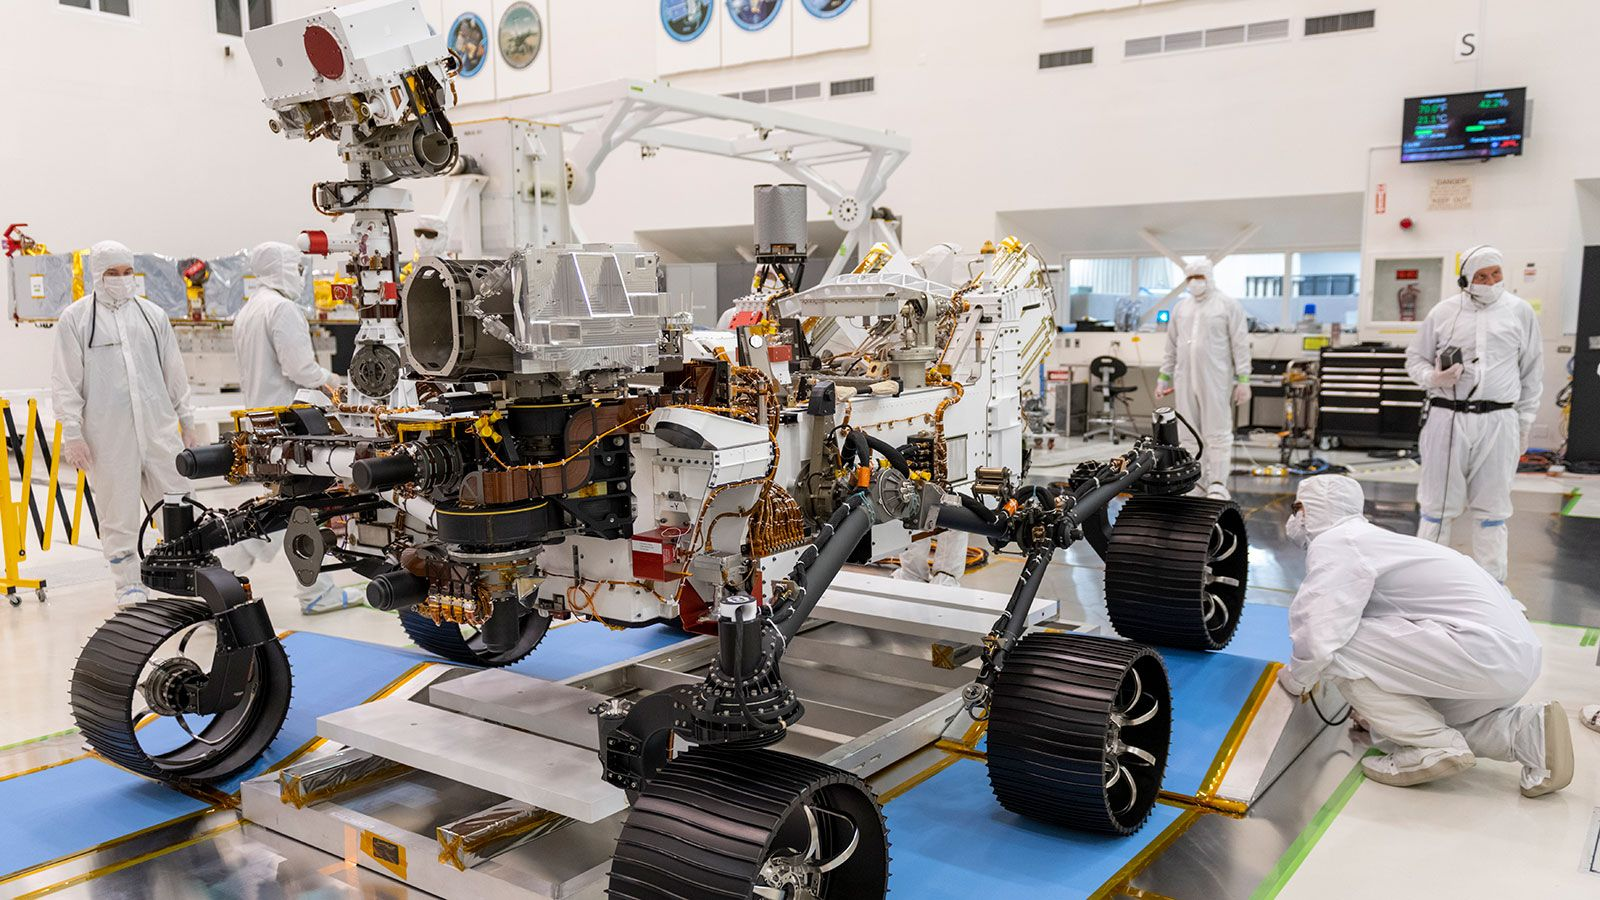 7 Things To Know About The Nasa Rover About To Land On Mars In 2021 Nasa Rover Nasa Nasa Mars